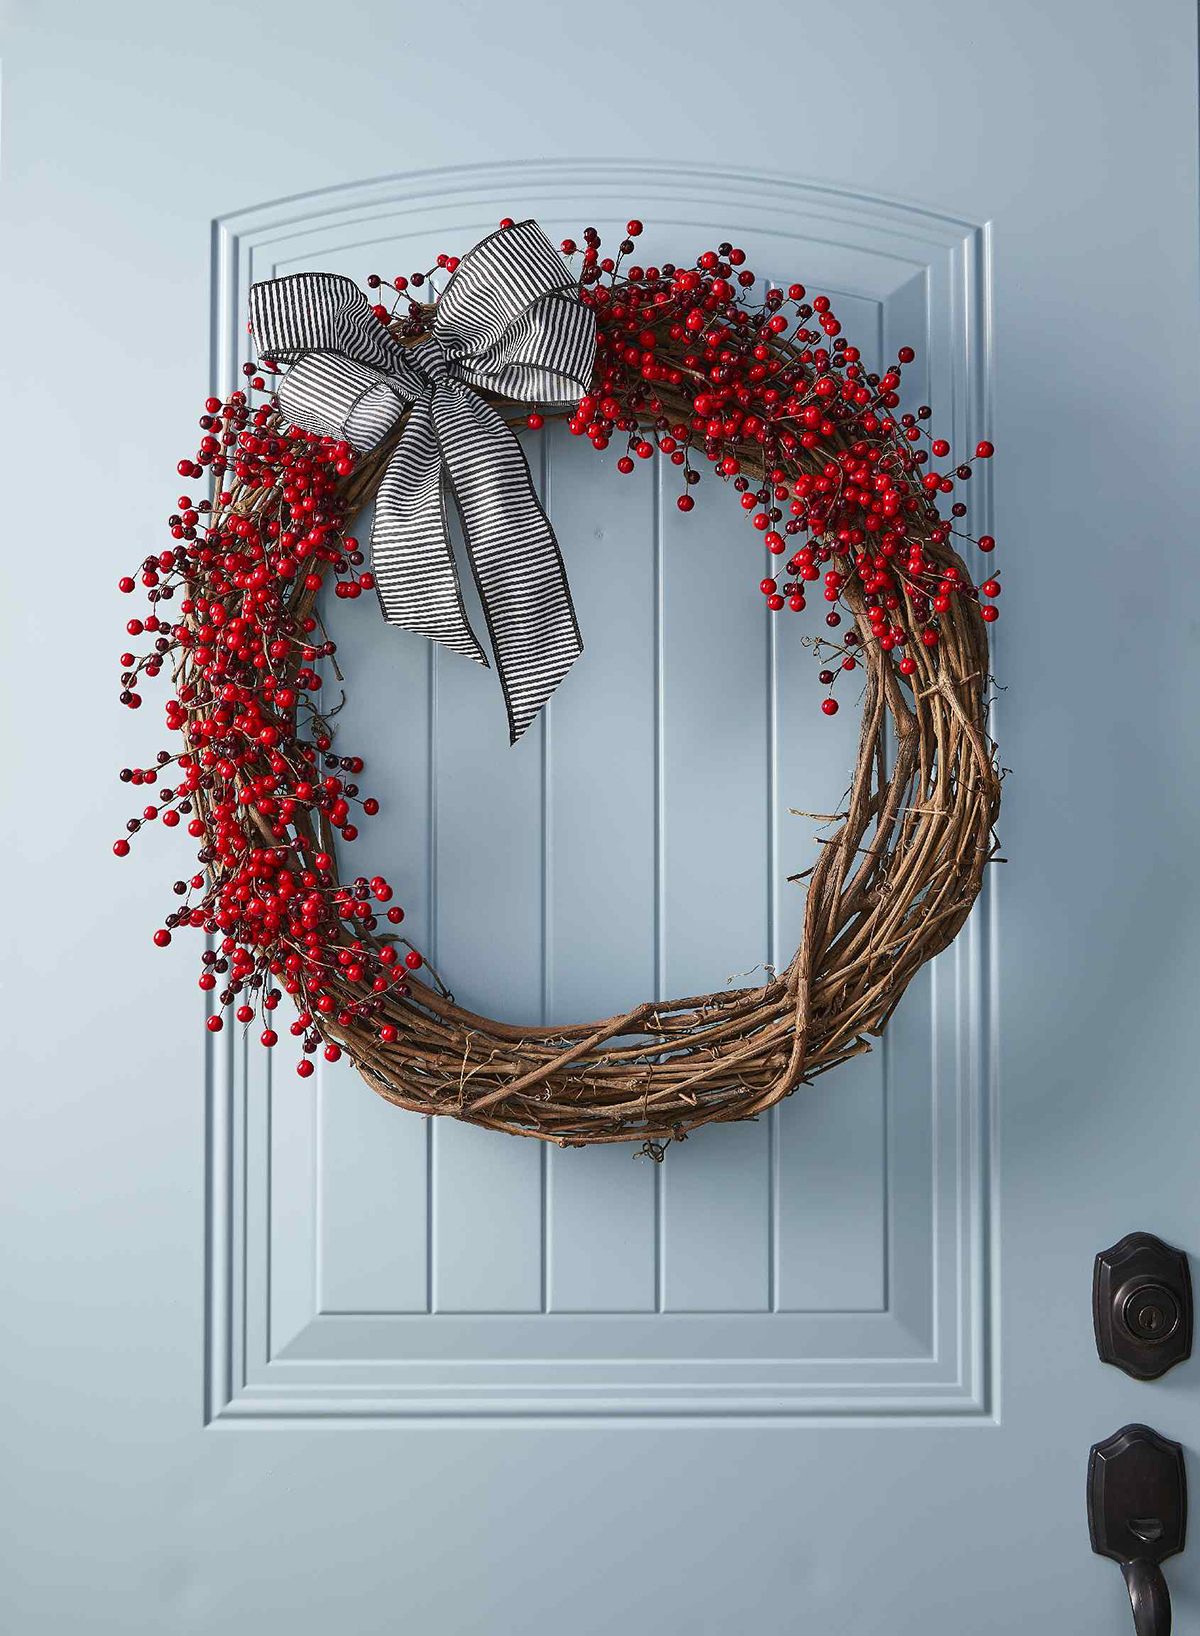 This DIY Red Berry Wreath Is the Easiest Holiday Craft